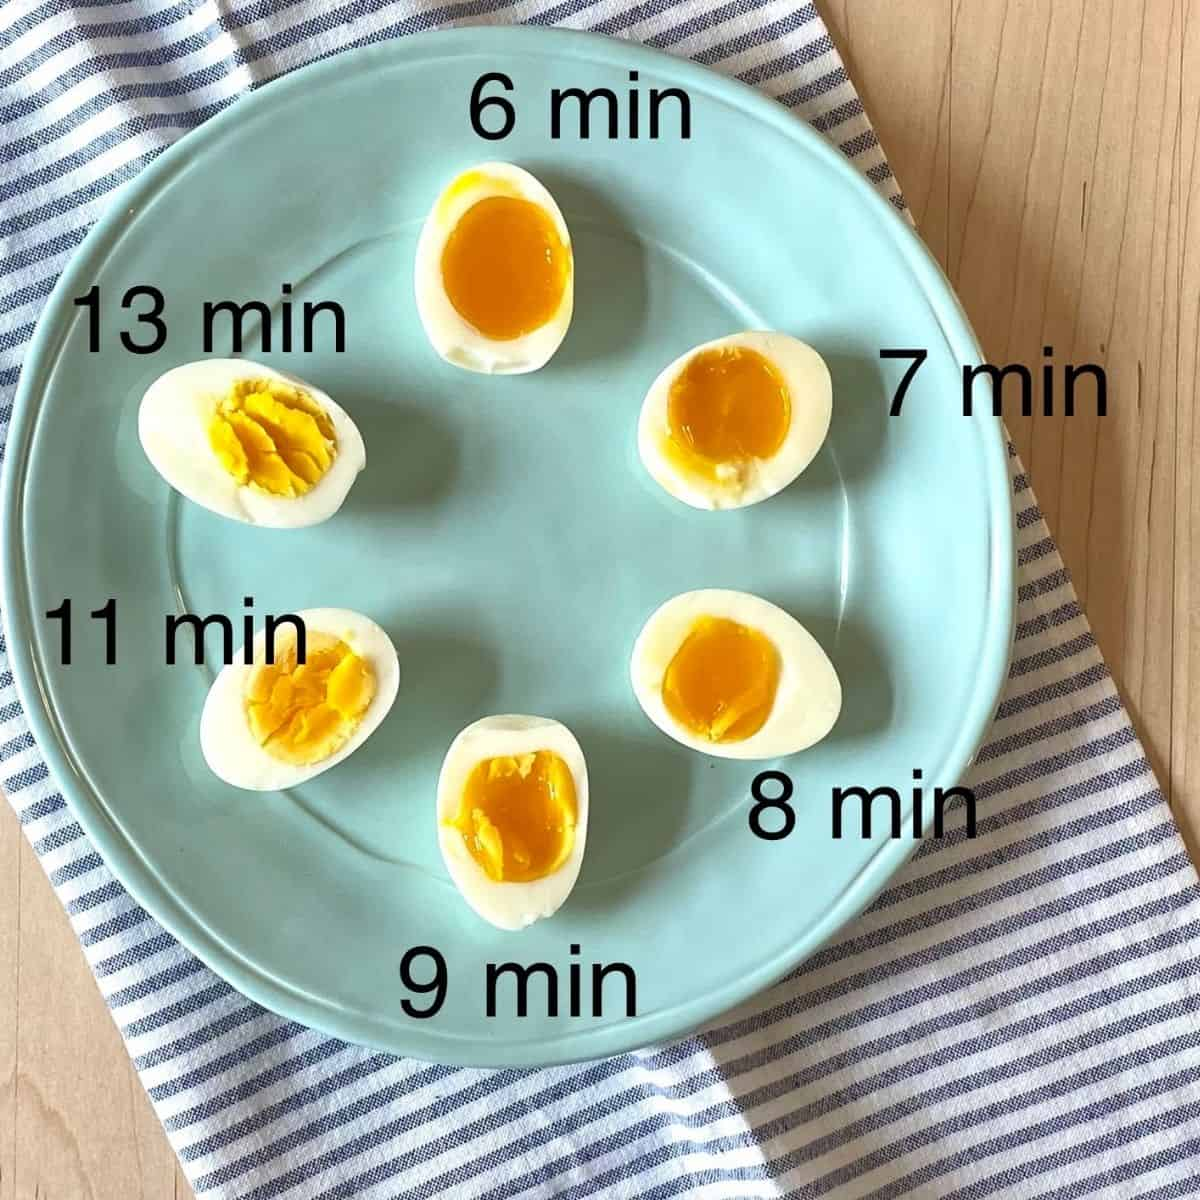 6 egg halves cooked to different doneness on blue plate